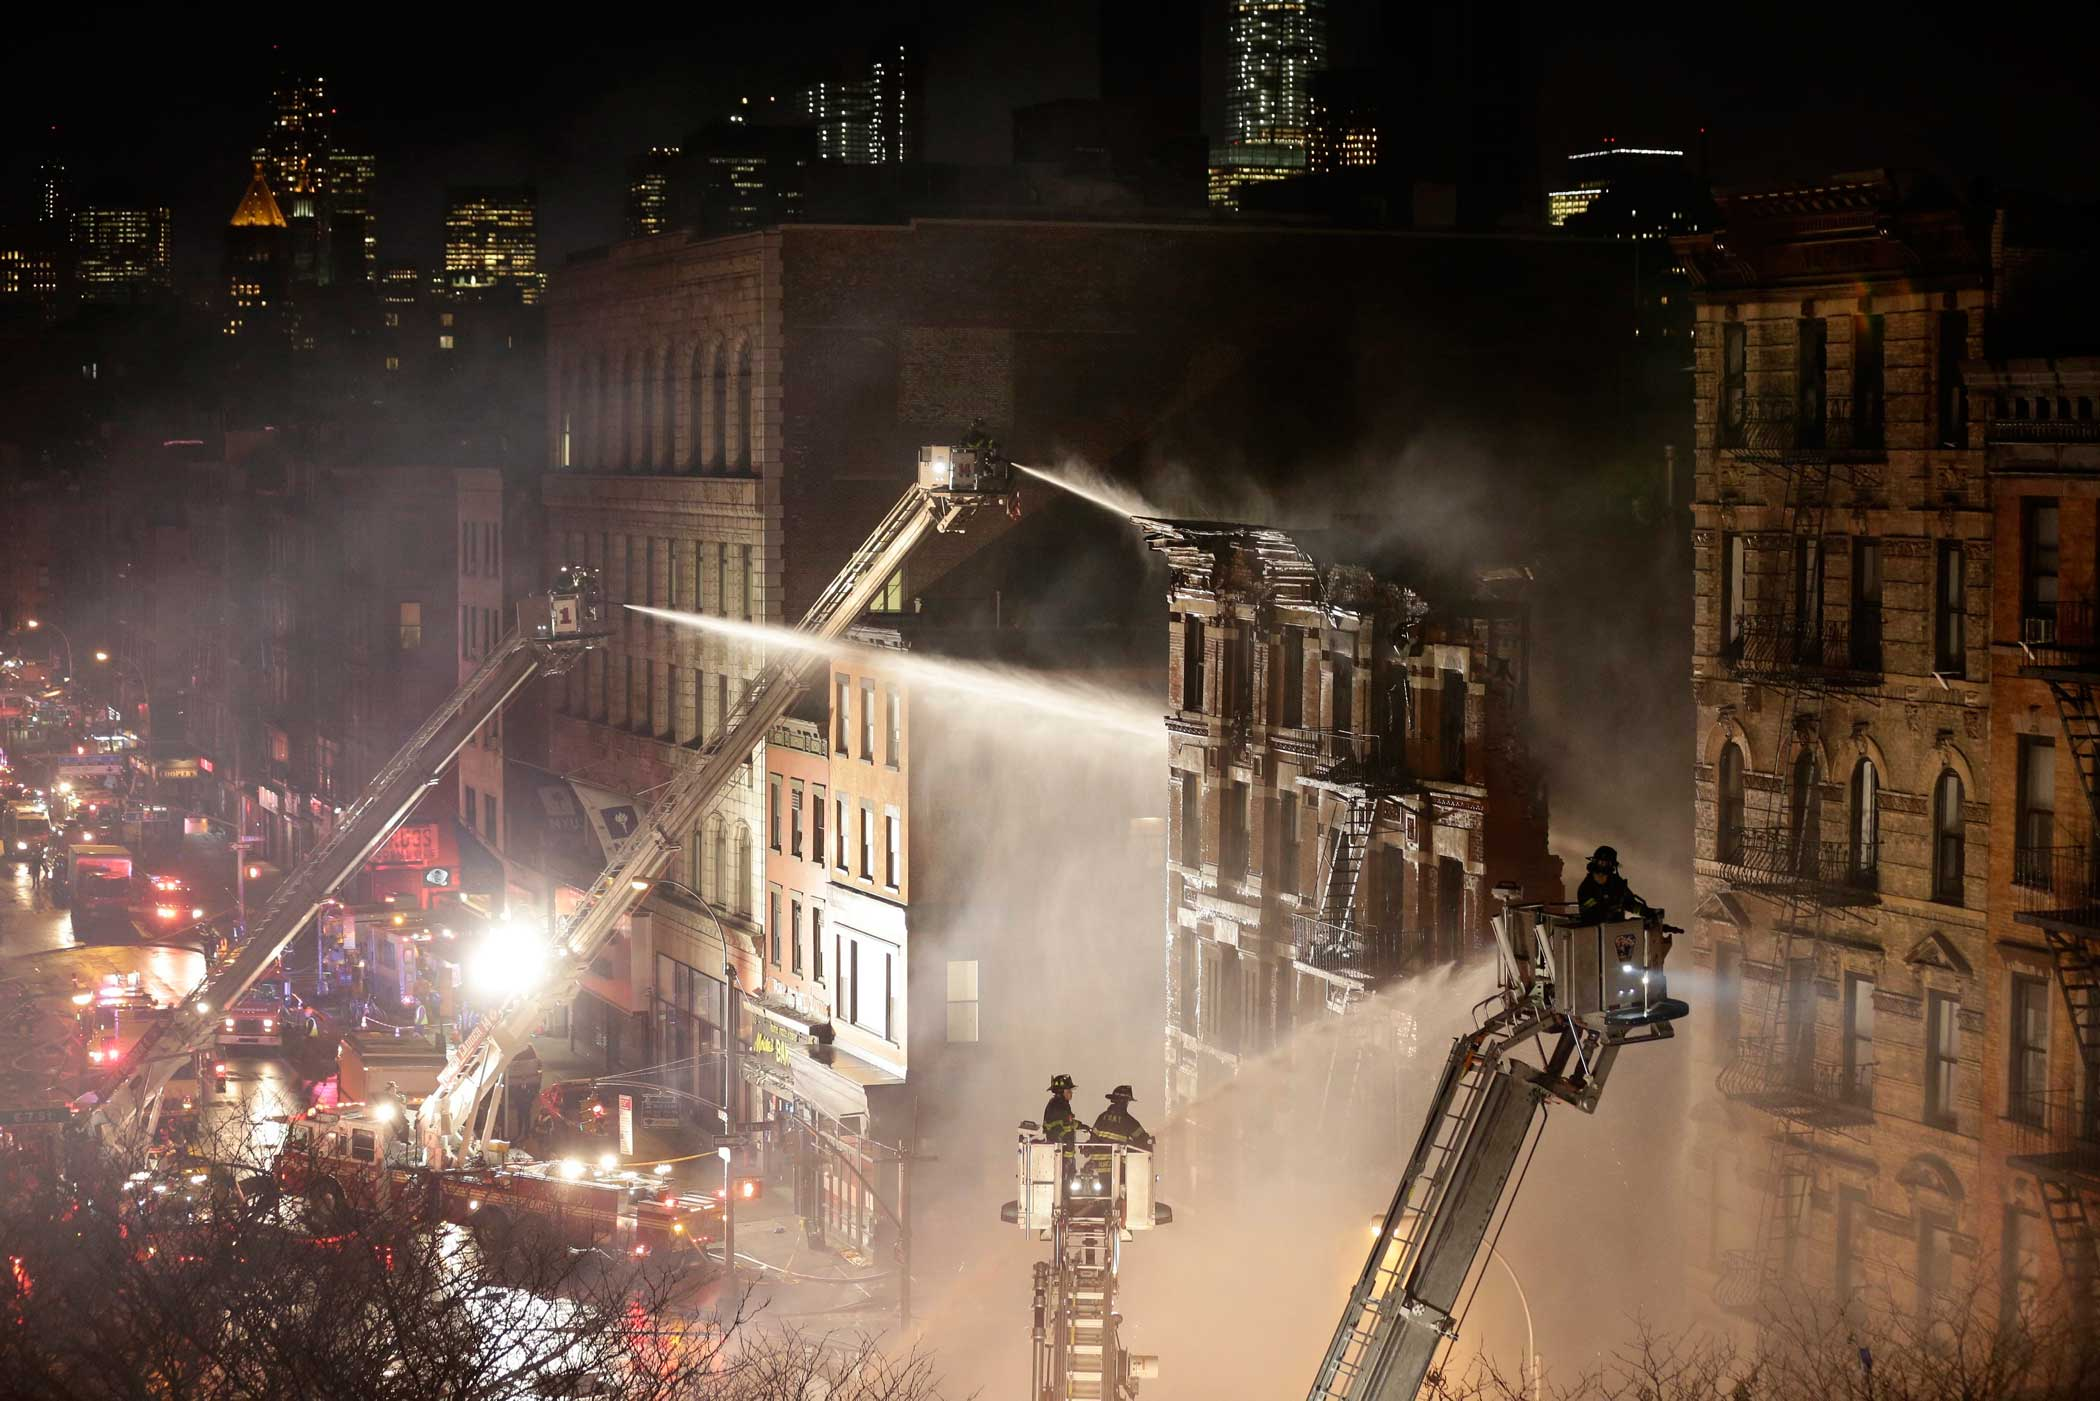 Firefighters respond to an explosion and partial building collapse in a residential and commercial mixed use multi-story structure in lower Manhattan, New York on March 26, 2015.